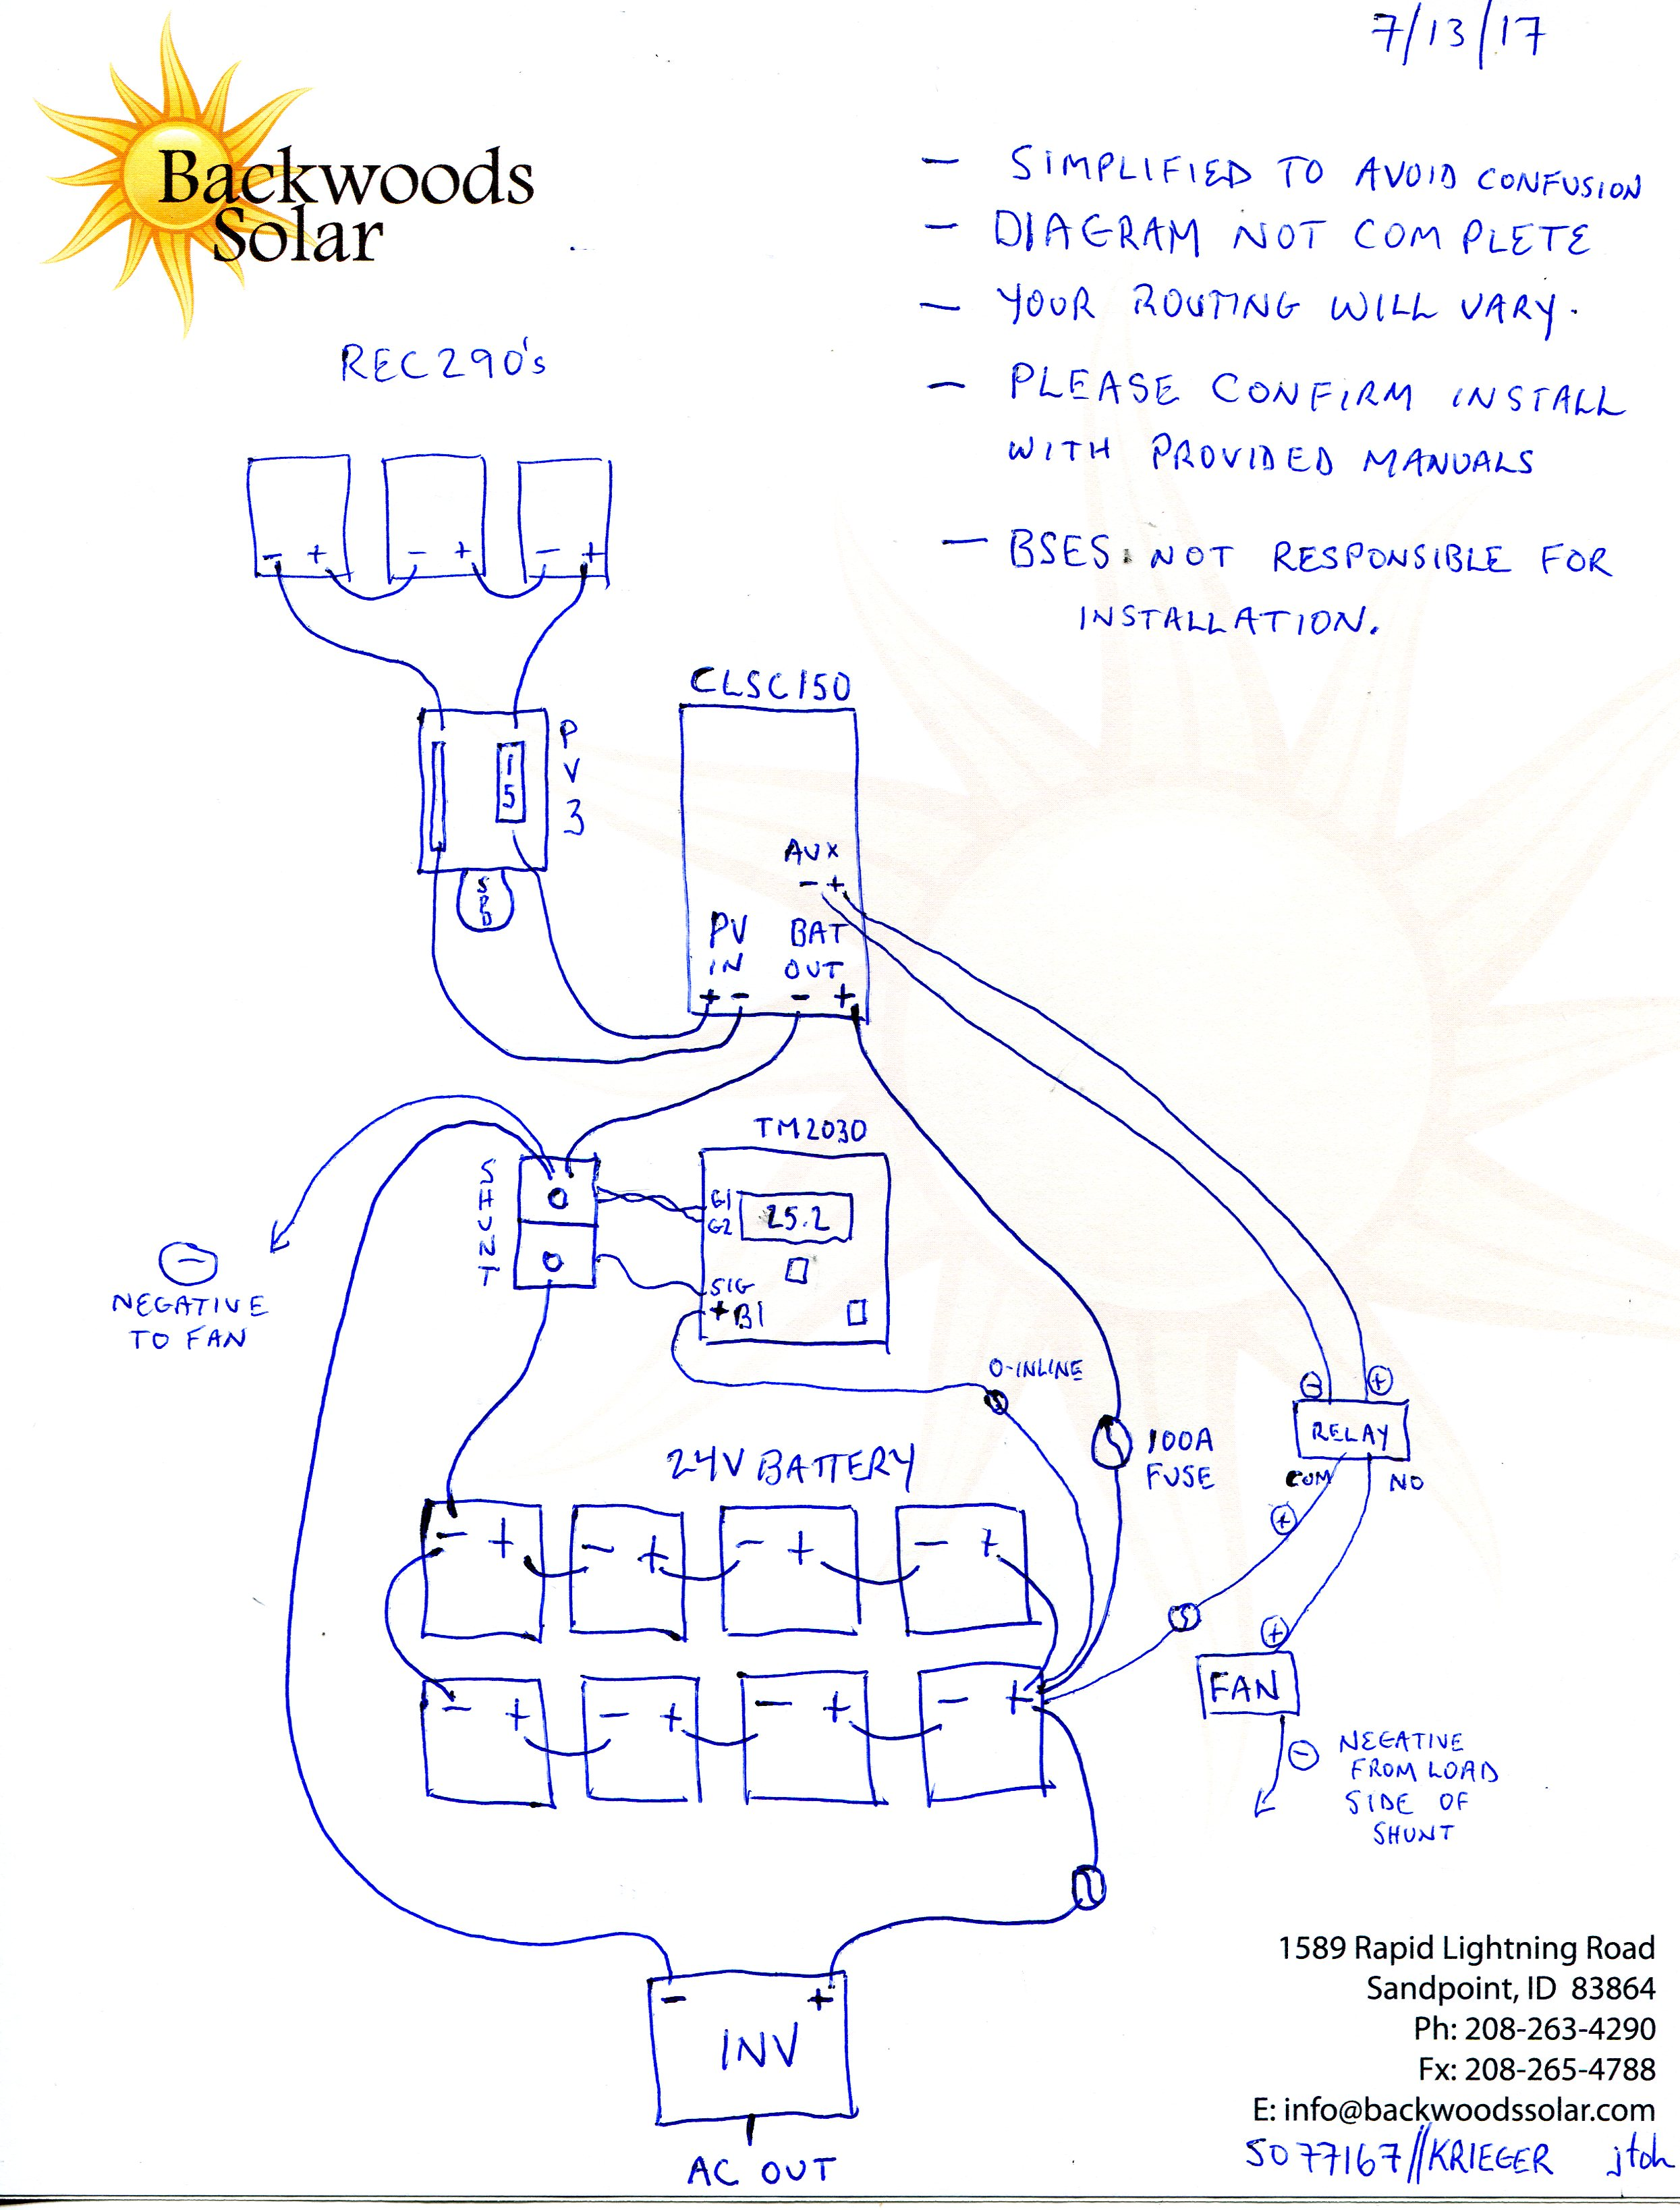 image solar noob seeks advice, offgrid two months now (electrical forum backwoods solar com for wiring diagrams at soozxer.org